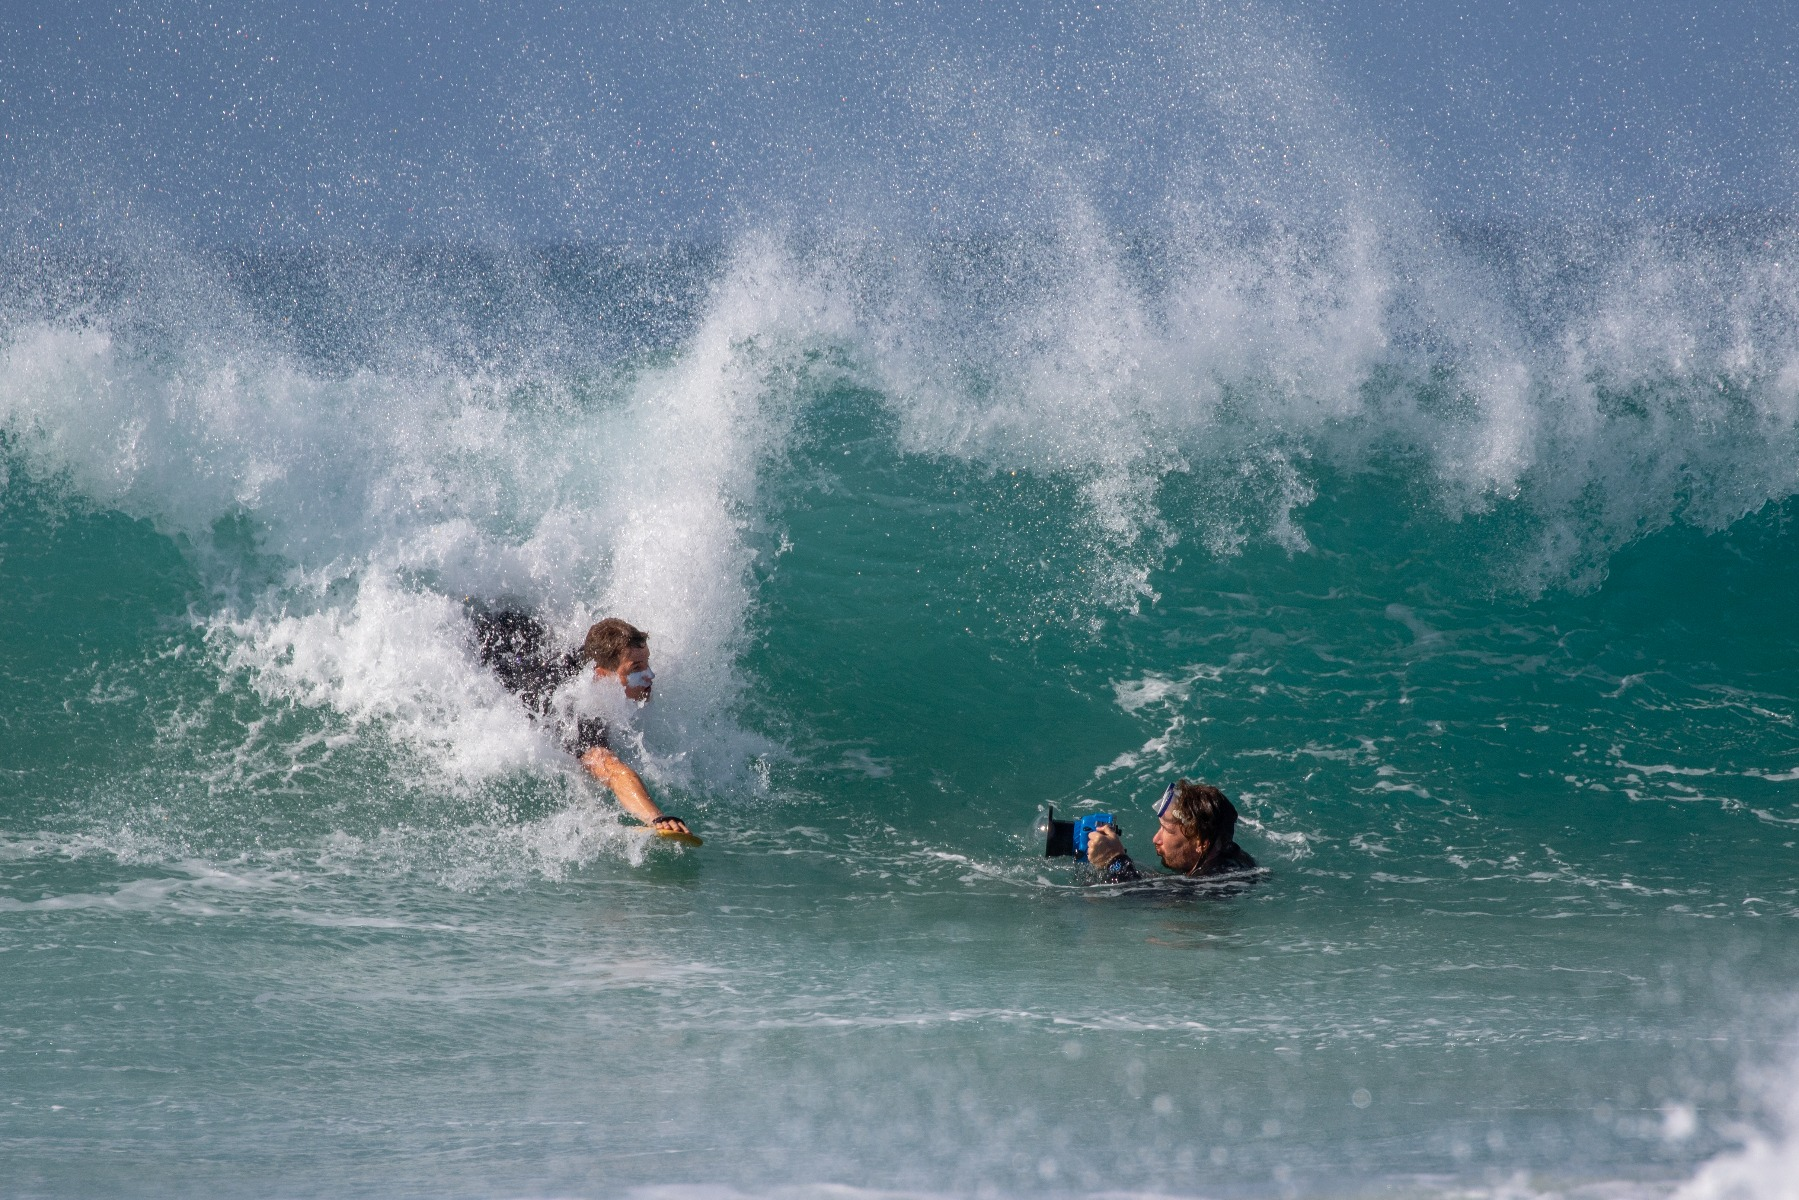 man taking a picture of a person surfing